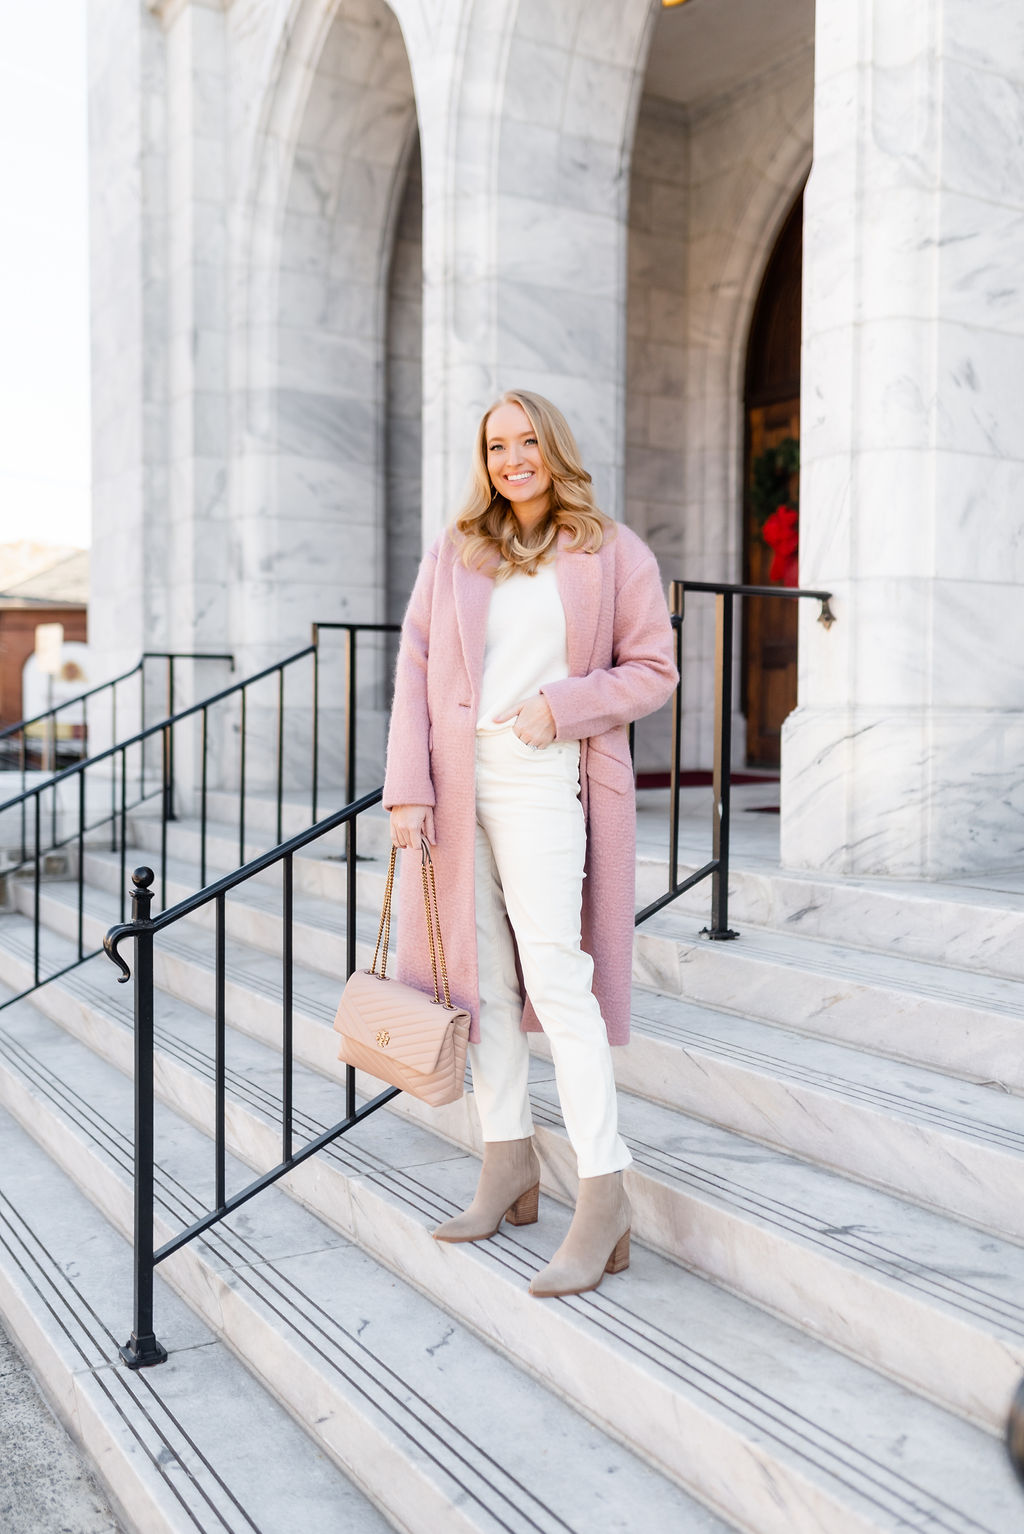 How to Style Pinks and Whites During Winter